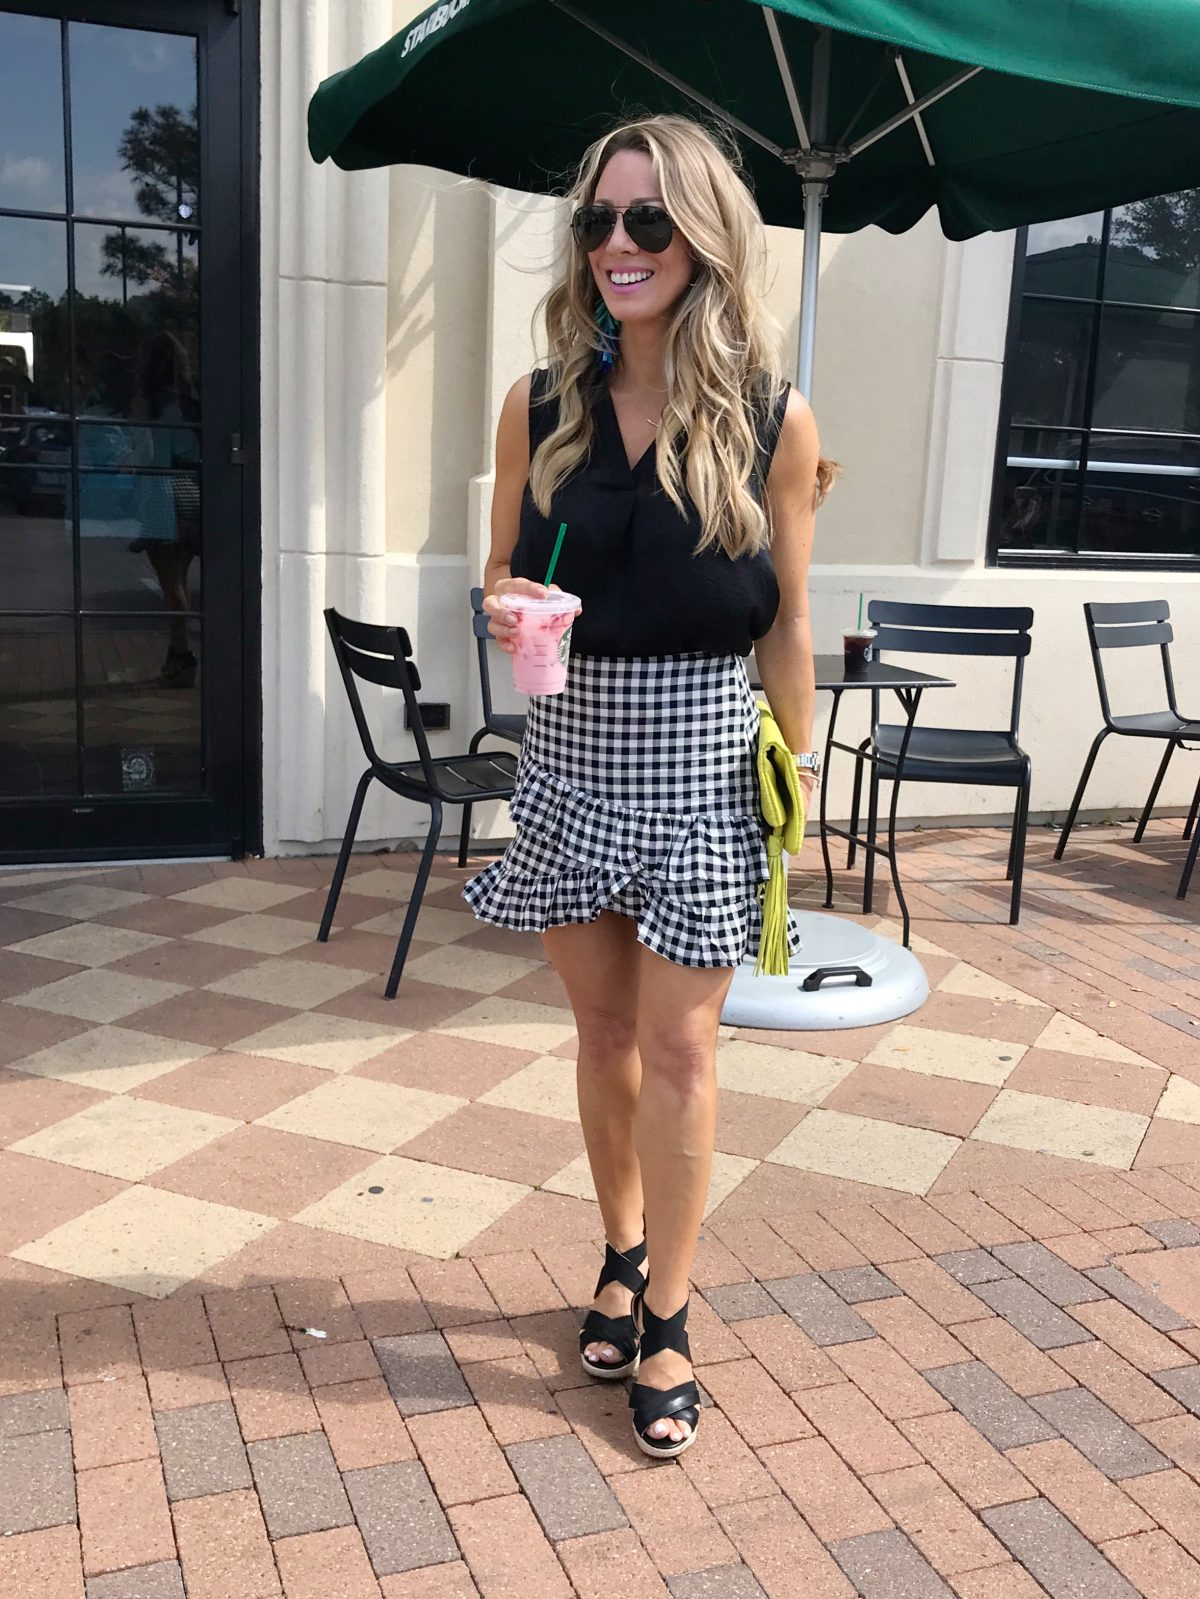 Gingham skirt with black top and wedges